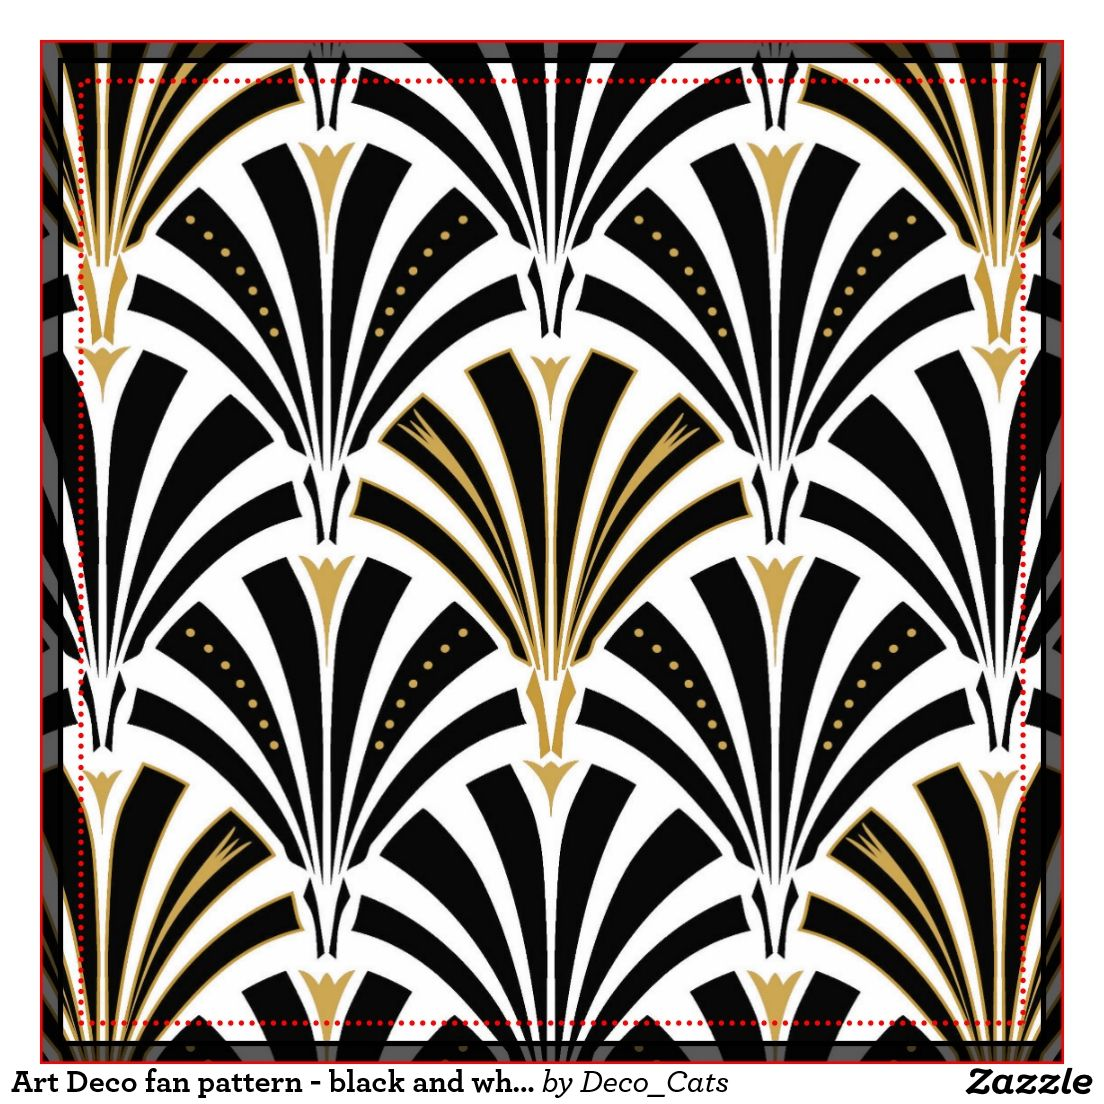 Art deco fan pattern black and white large square tile zazzle shop art deco fan pattern chocolate on pink ceramic tile created by decocats dailygadgetfo Images